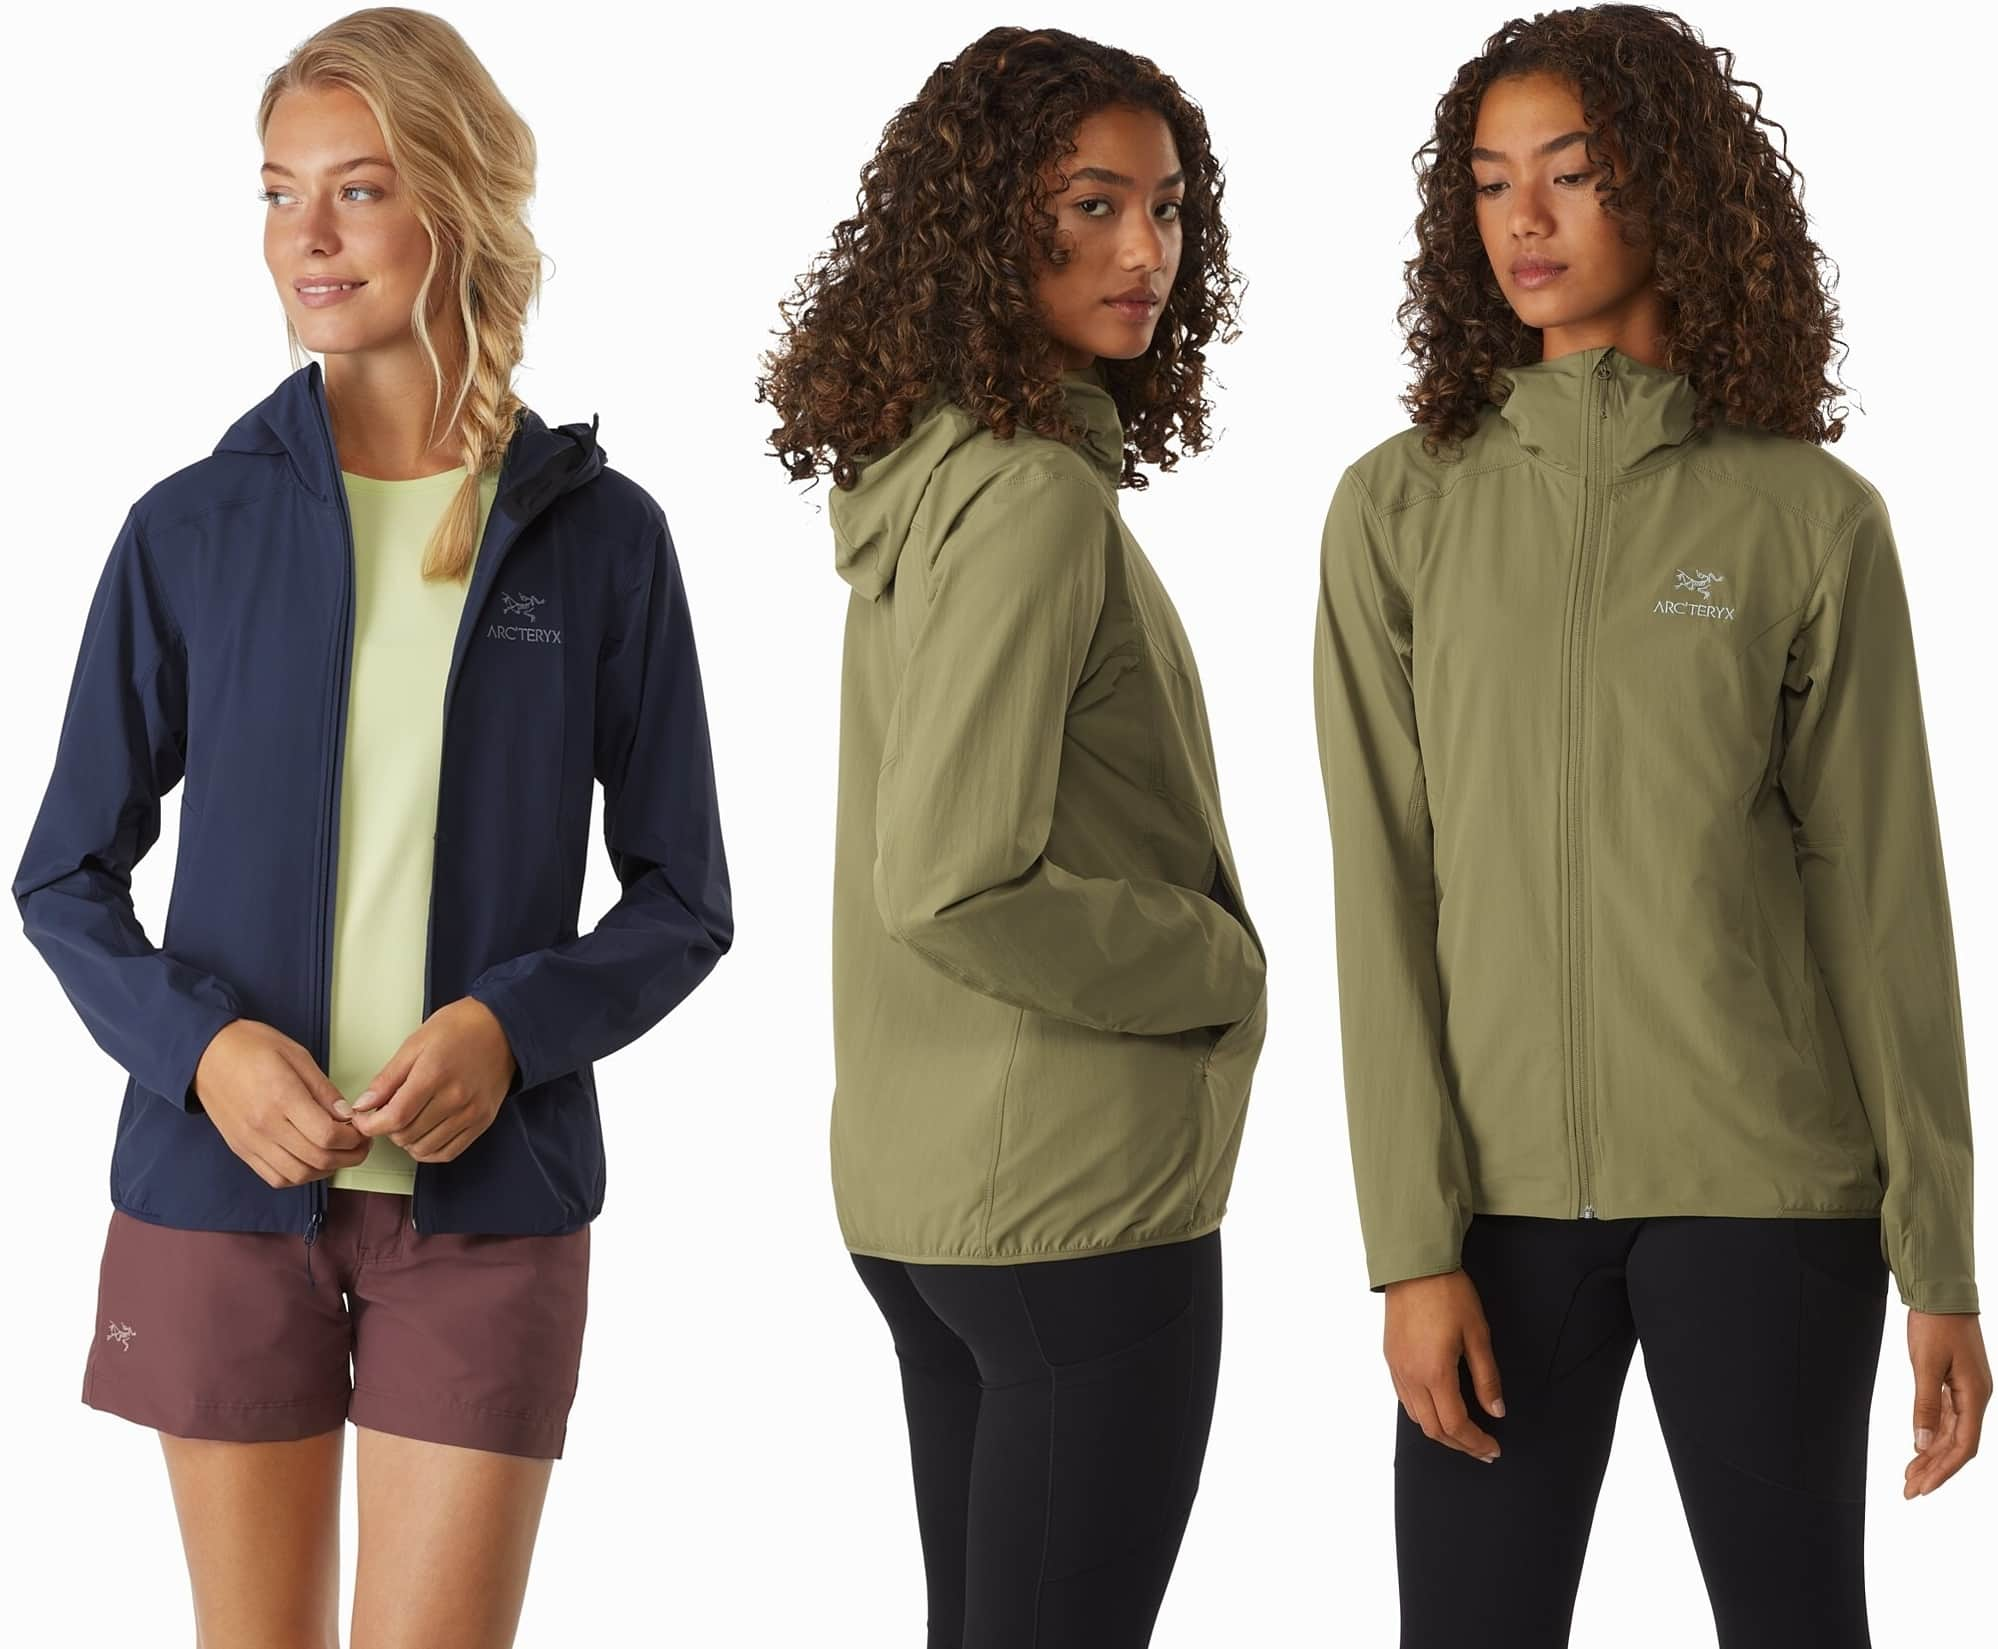 Versatile, superlight softshell for hiking and a range of active mountain adventures